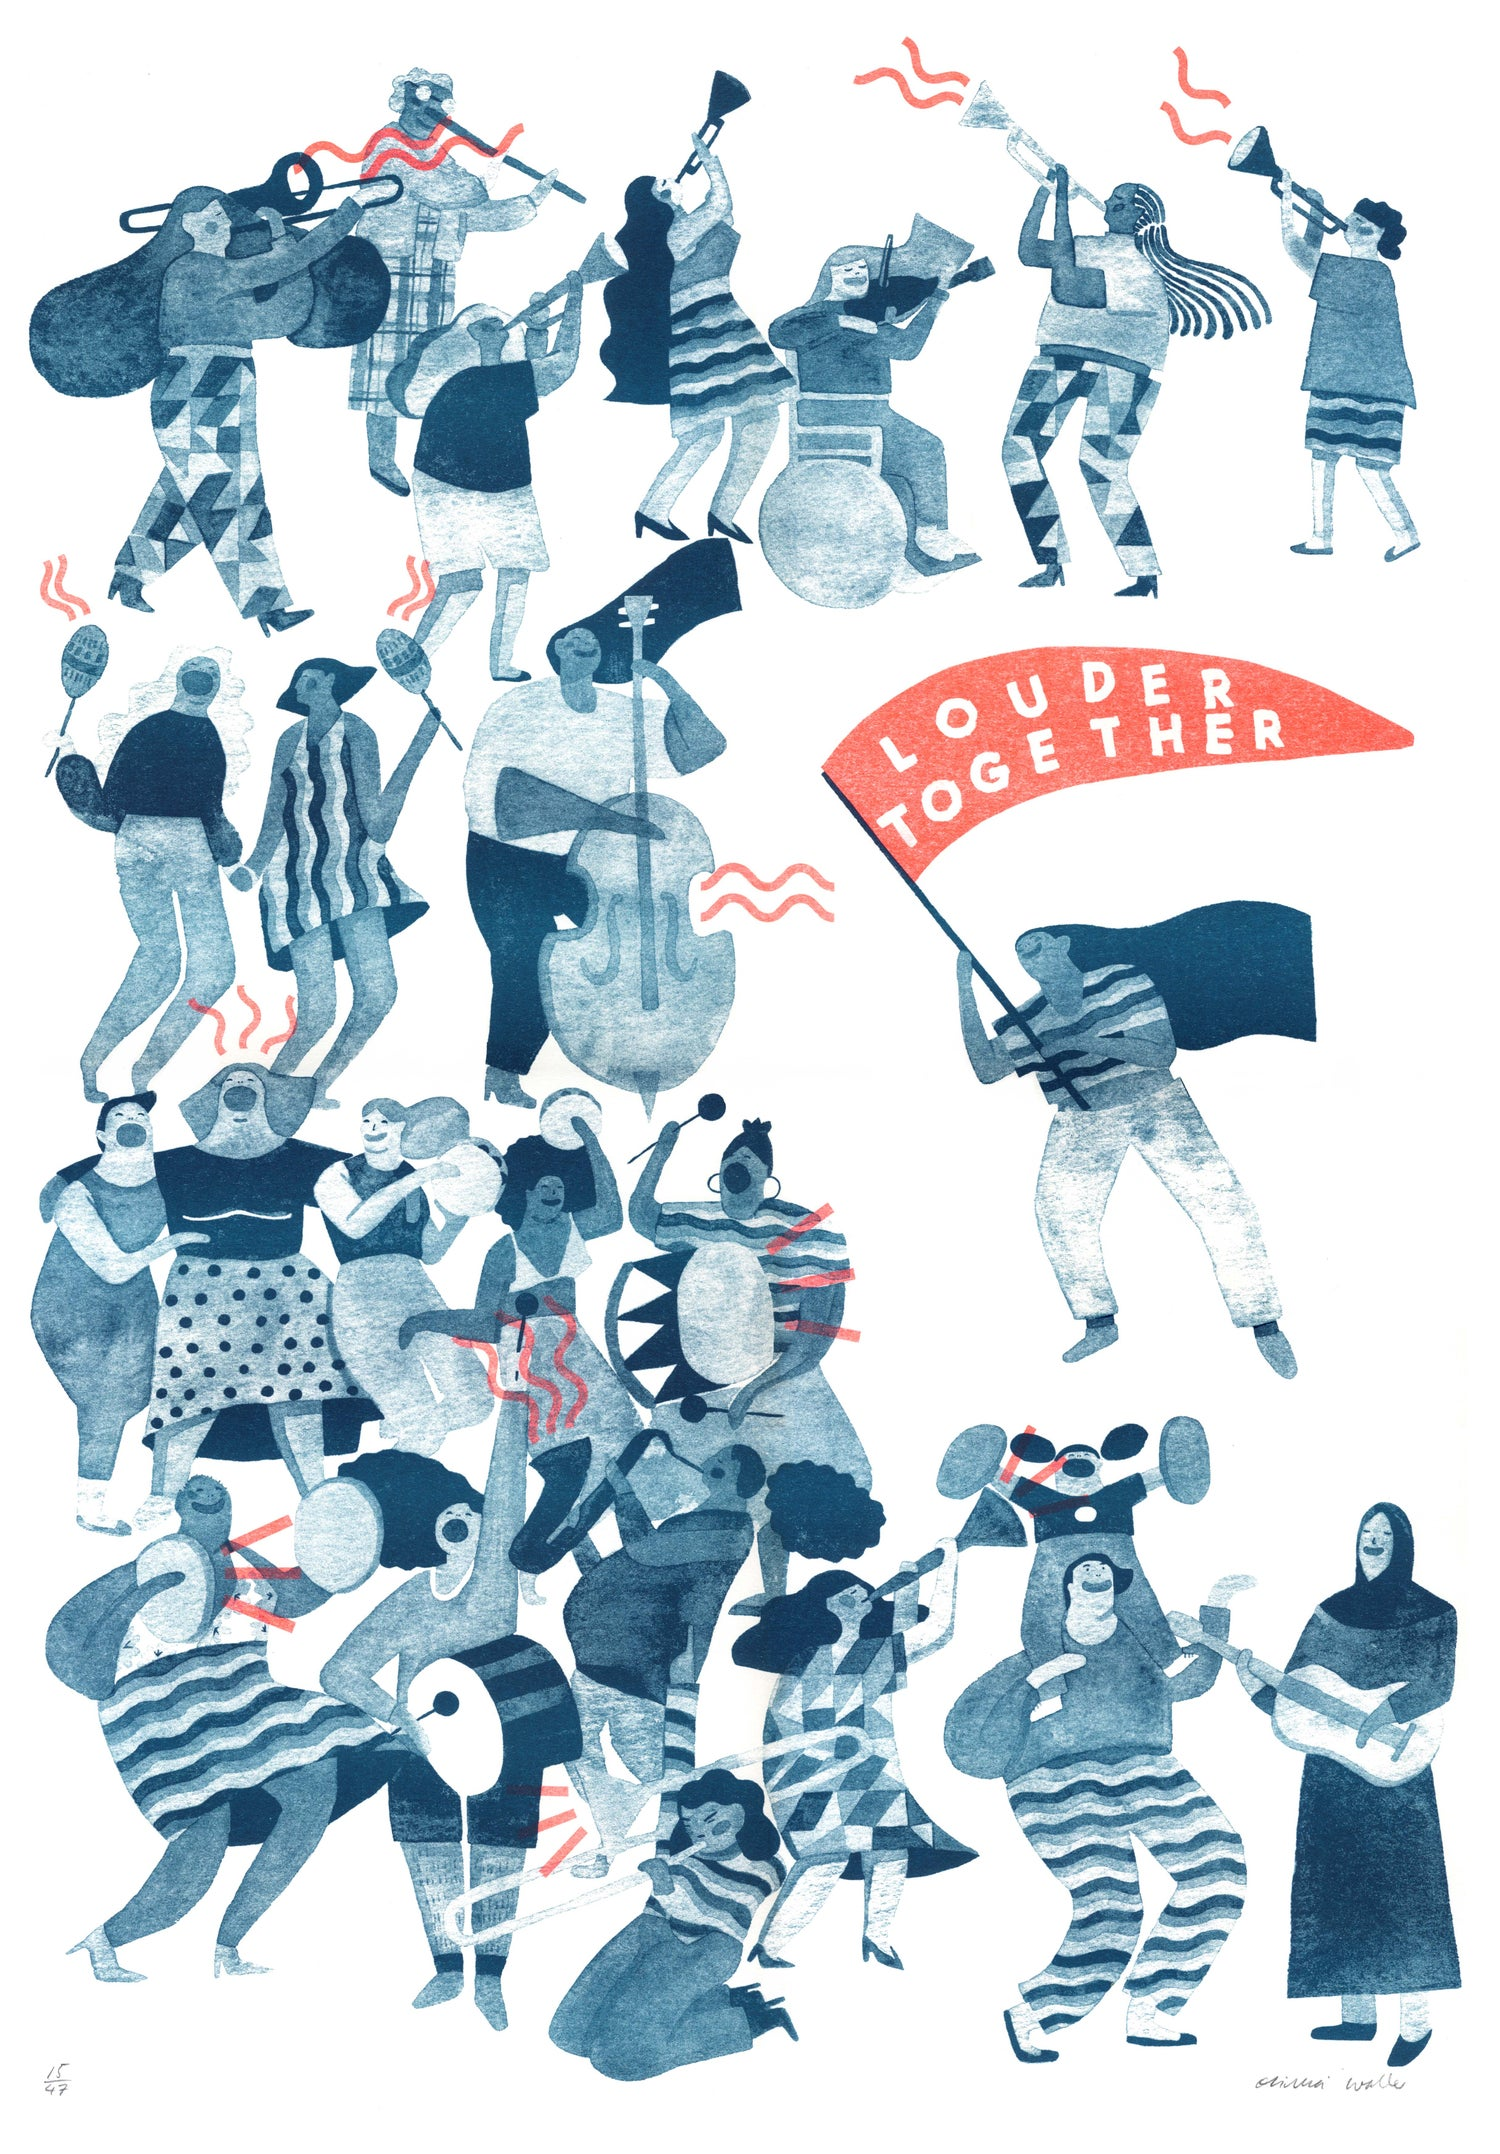 Image of 'Louder Together' riso print in teal